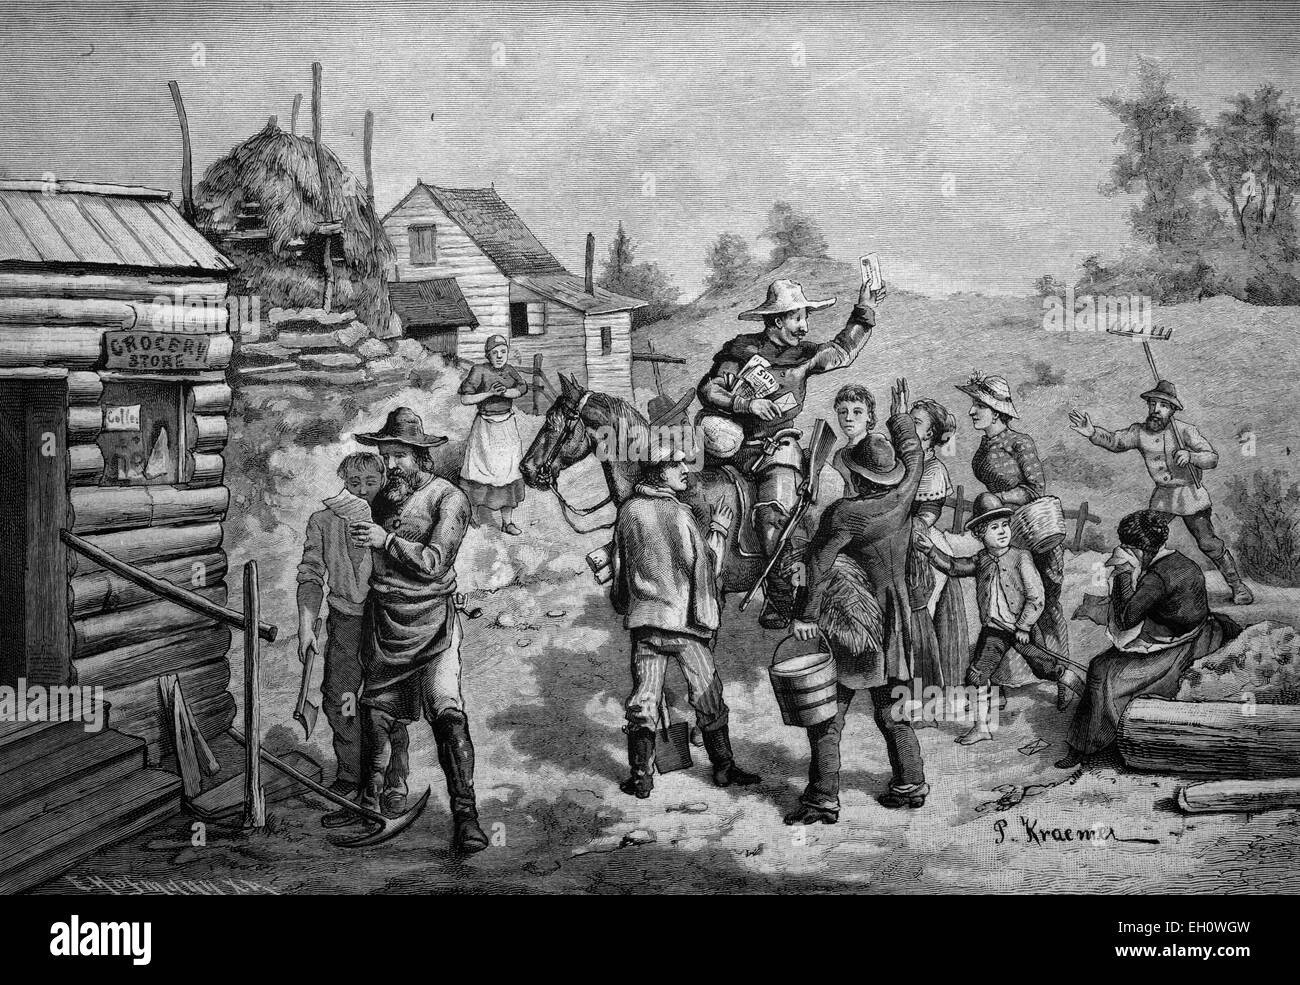 The first postman arriving at a new settlement in the Wild West, America, historical illlustration, about 1886 - Stock Image